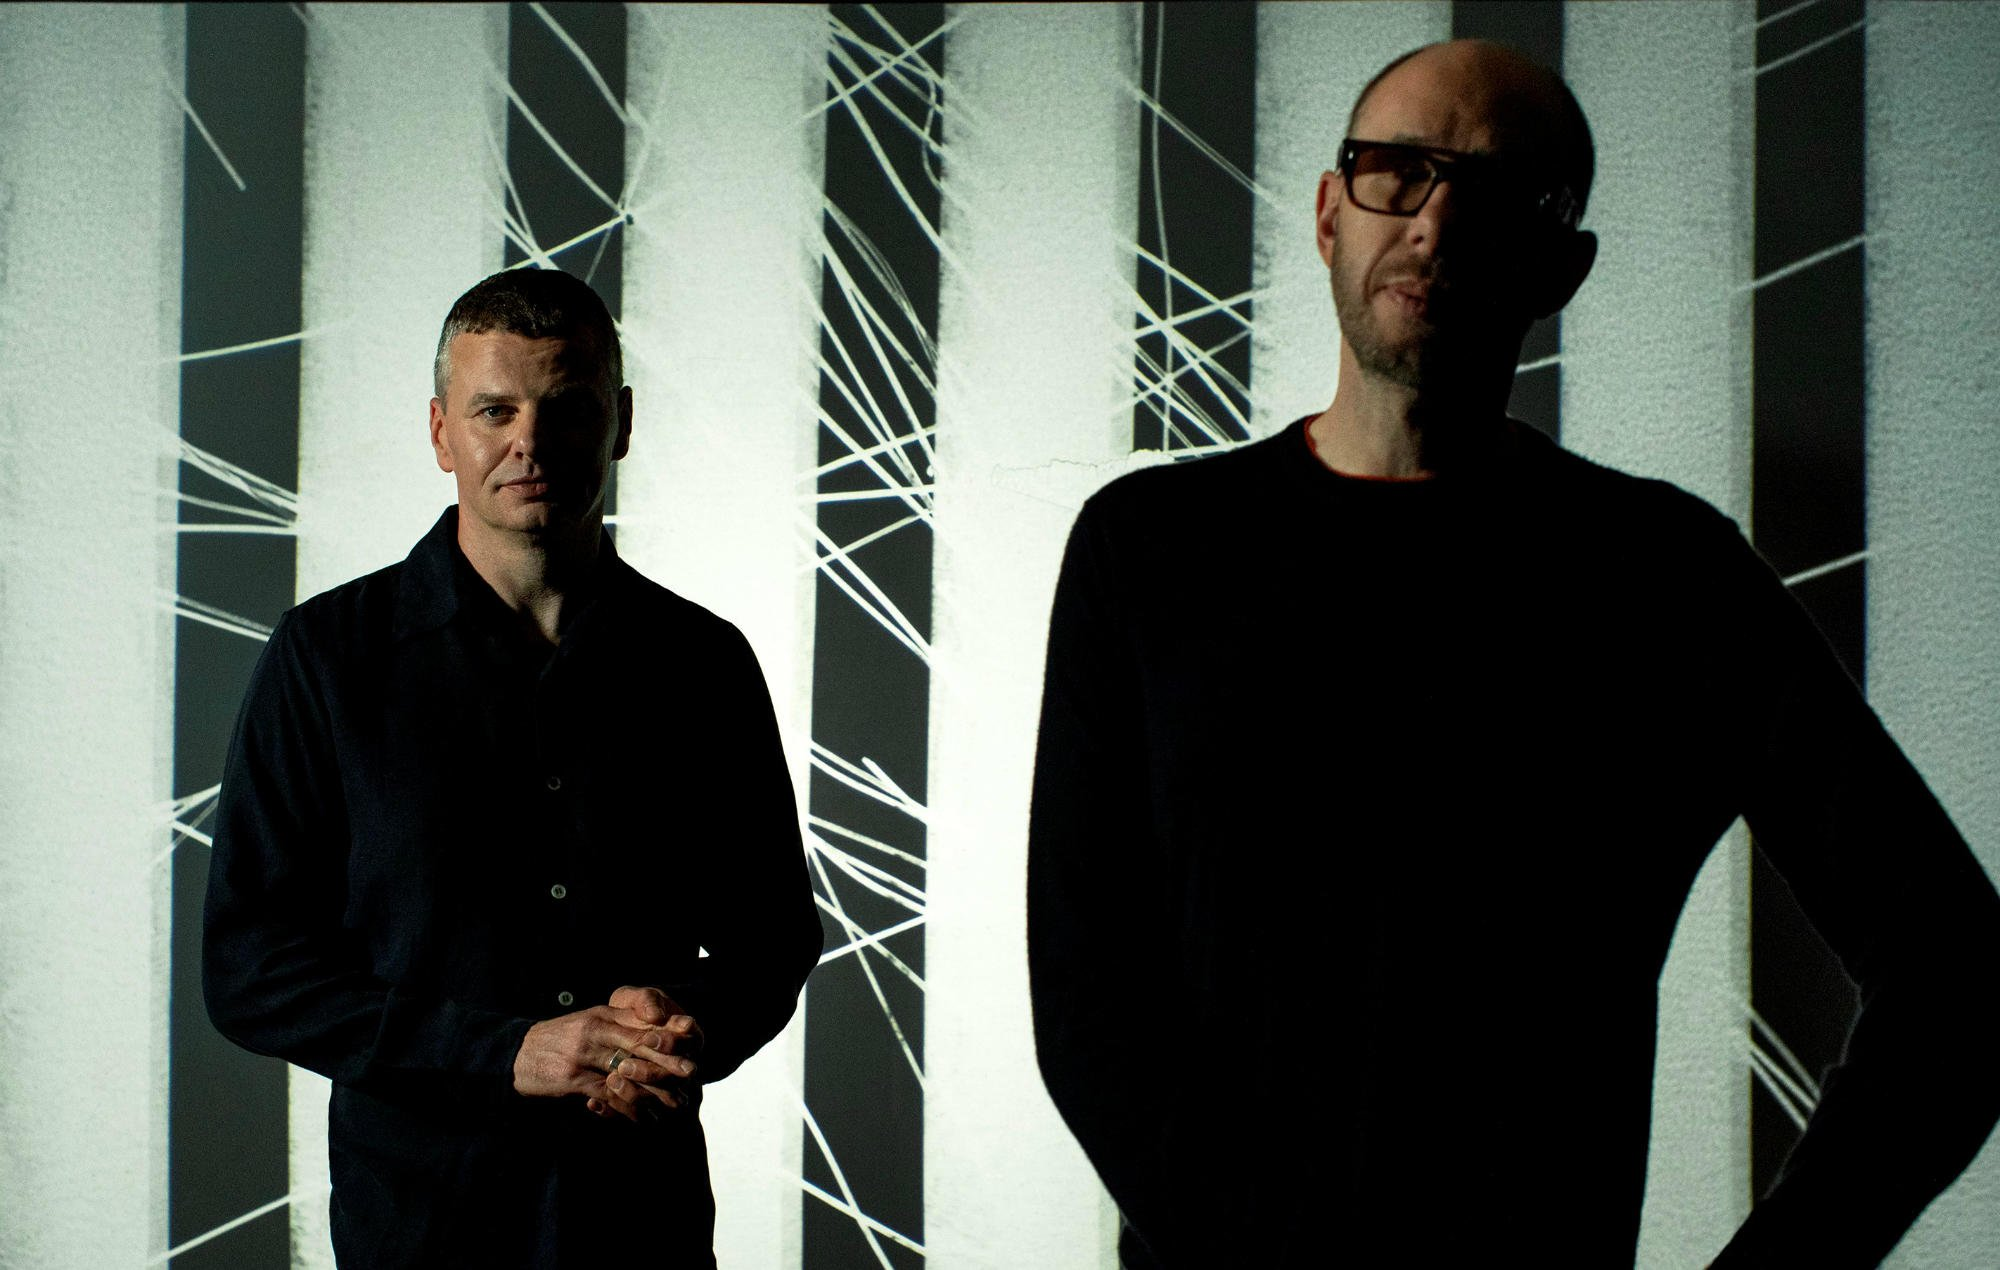 The Chemical Brothers announce new album 'No Geography' and UK arena tour https://t.co/wUrrMVkB1c https://t.co/clRNJa4Wik